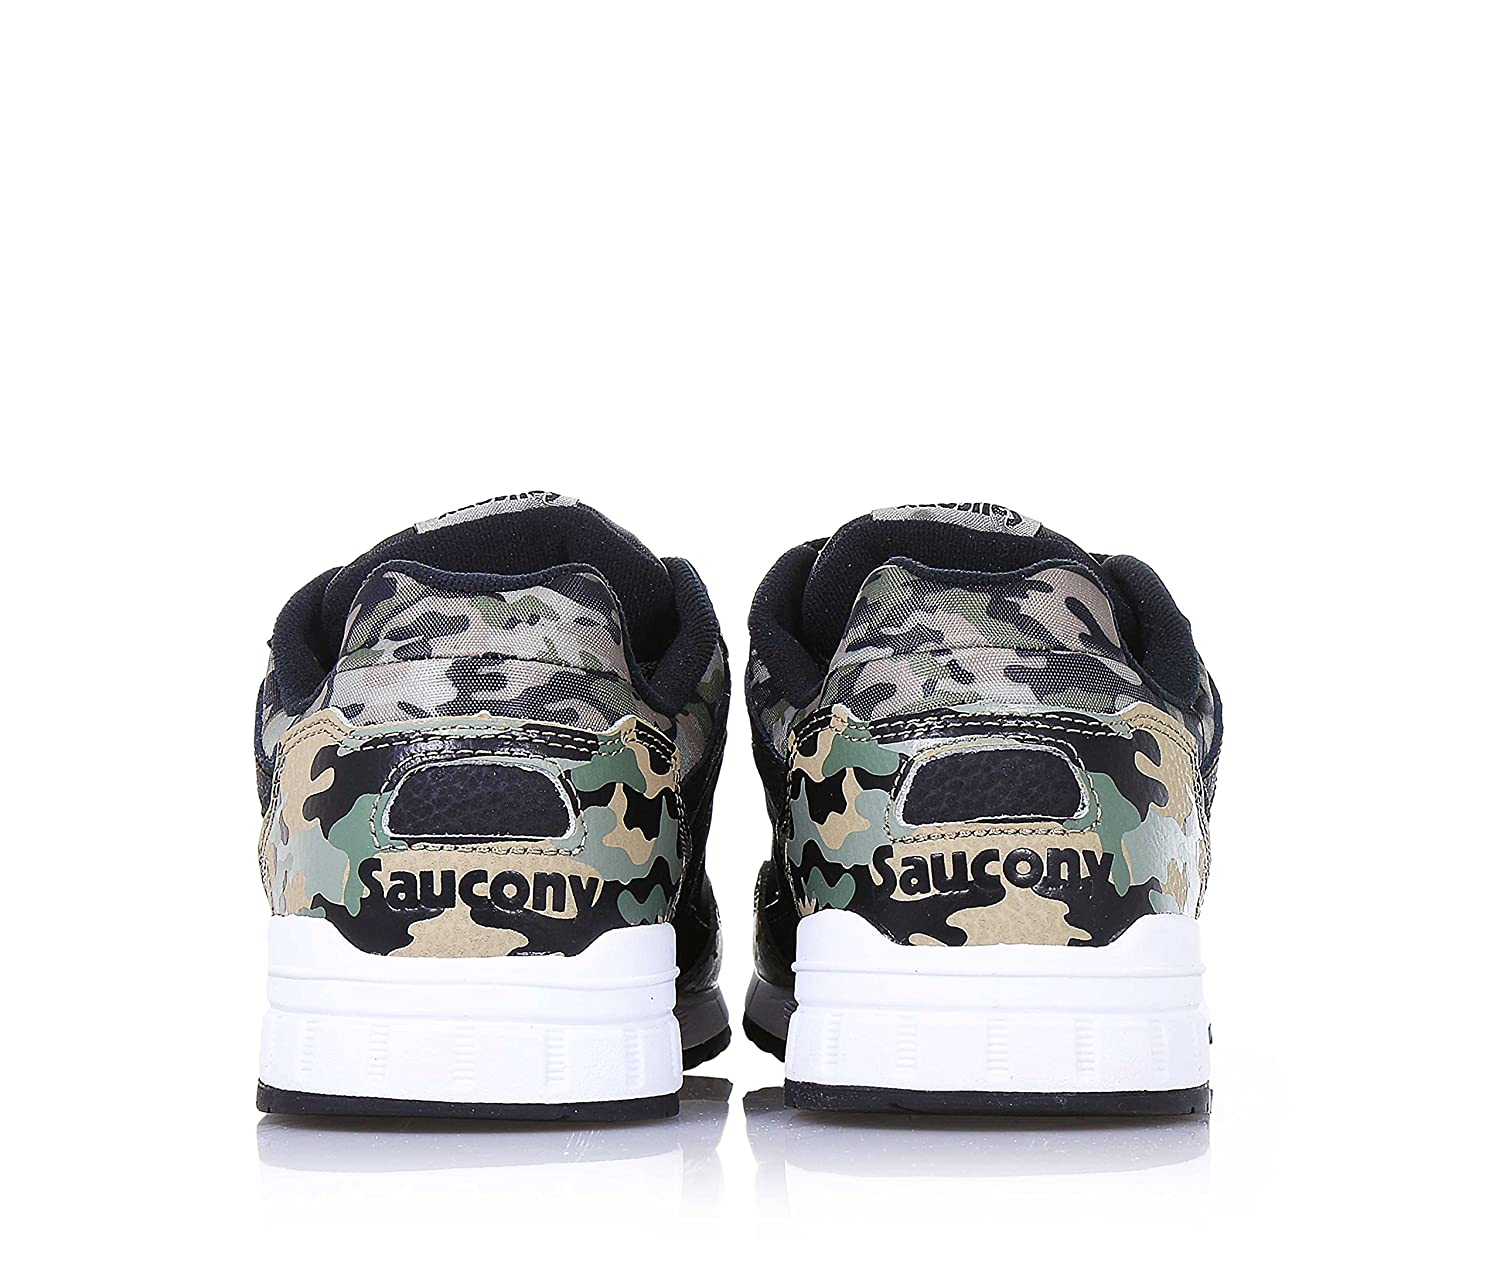 a04a2baa219e SAUCONY - Camouflage and black lace-up sports shoe